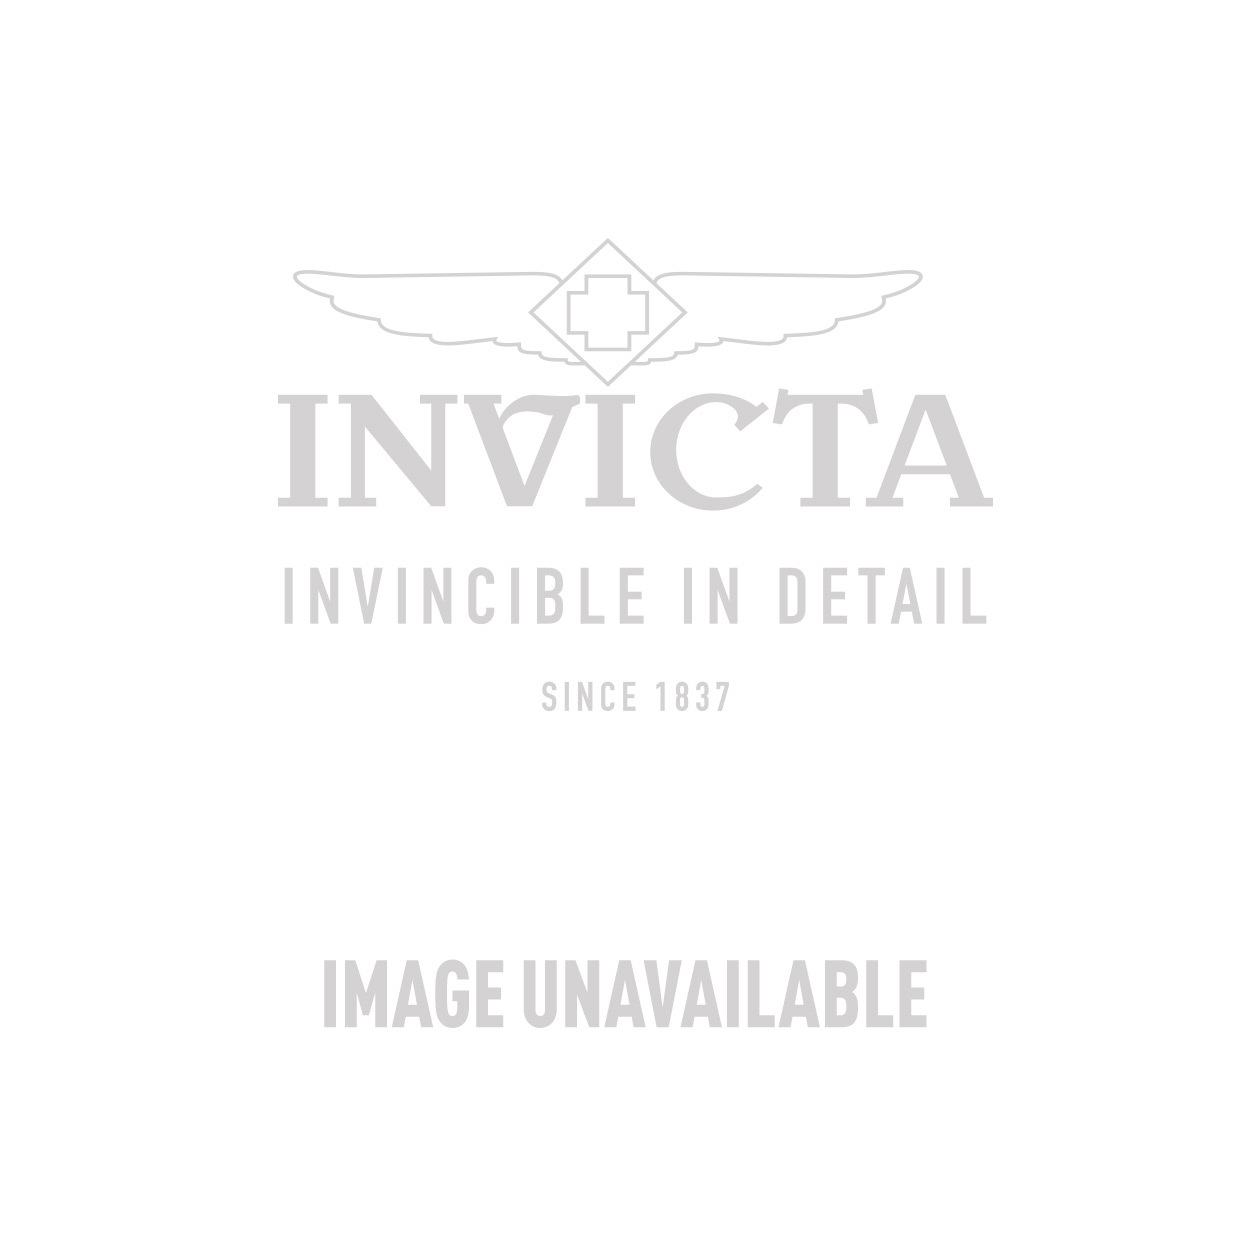 Invicta Angel Swiss Movement Quartz Watch - Stainless Steel case Stainless Steel band - Model 15873